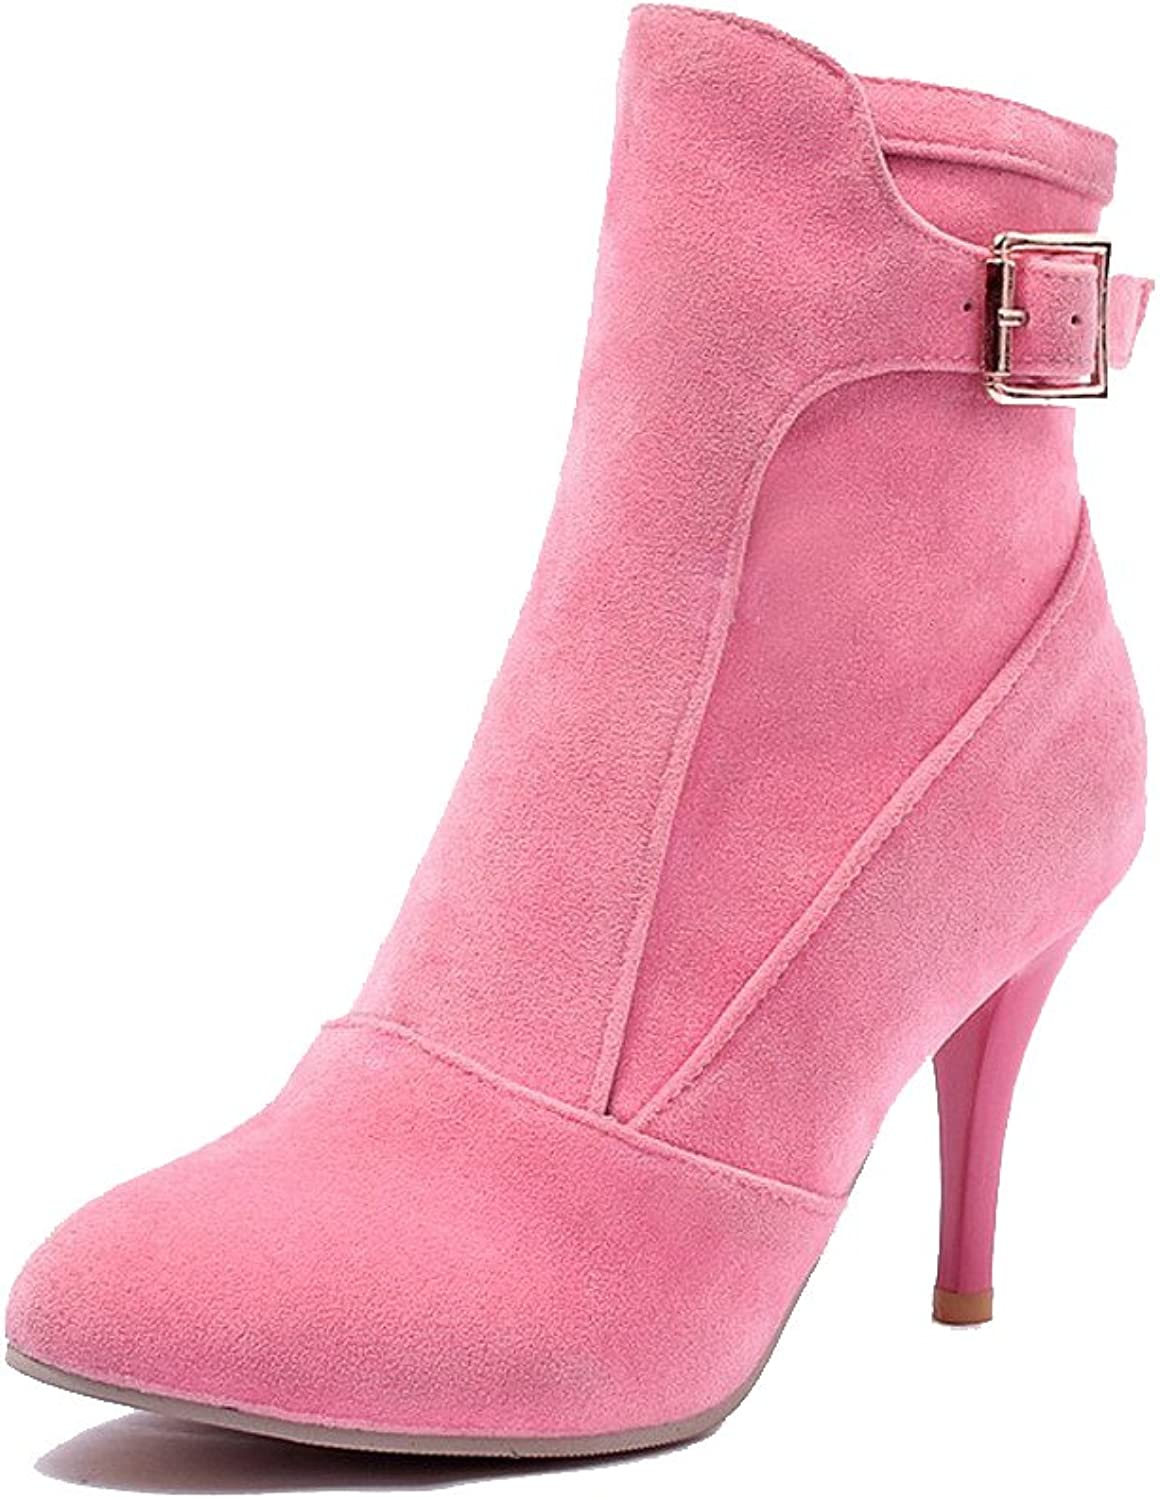 WeenFashion Women's Imitated Suede Low Top Solid Zipper High-Heels Boots